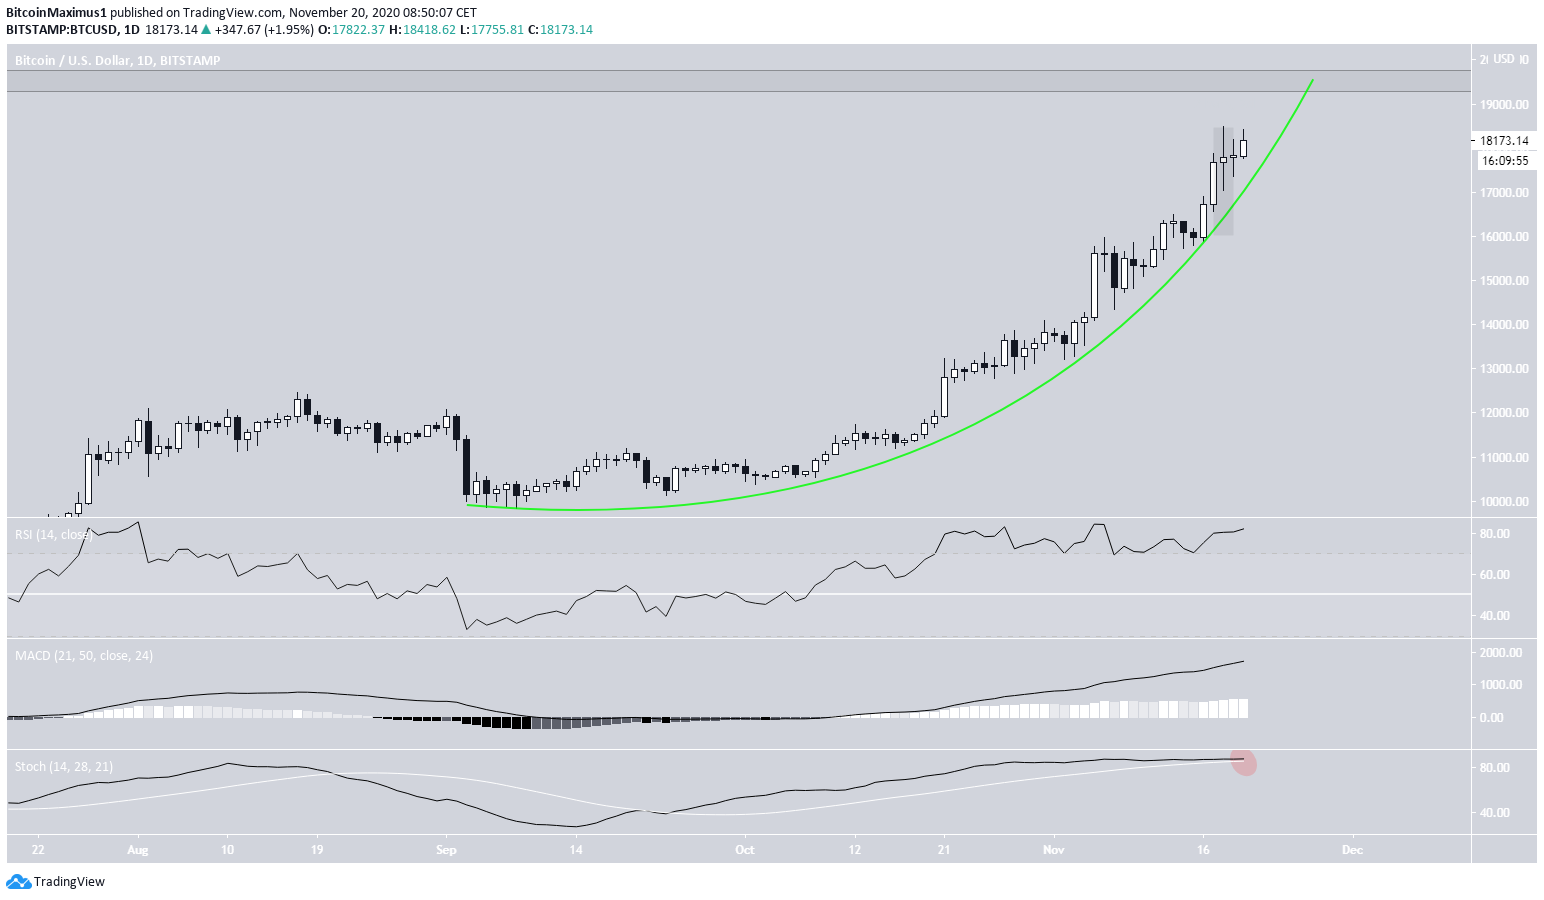 Bitcoin Parabolic Ascending Support Line